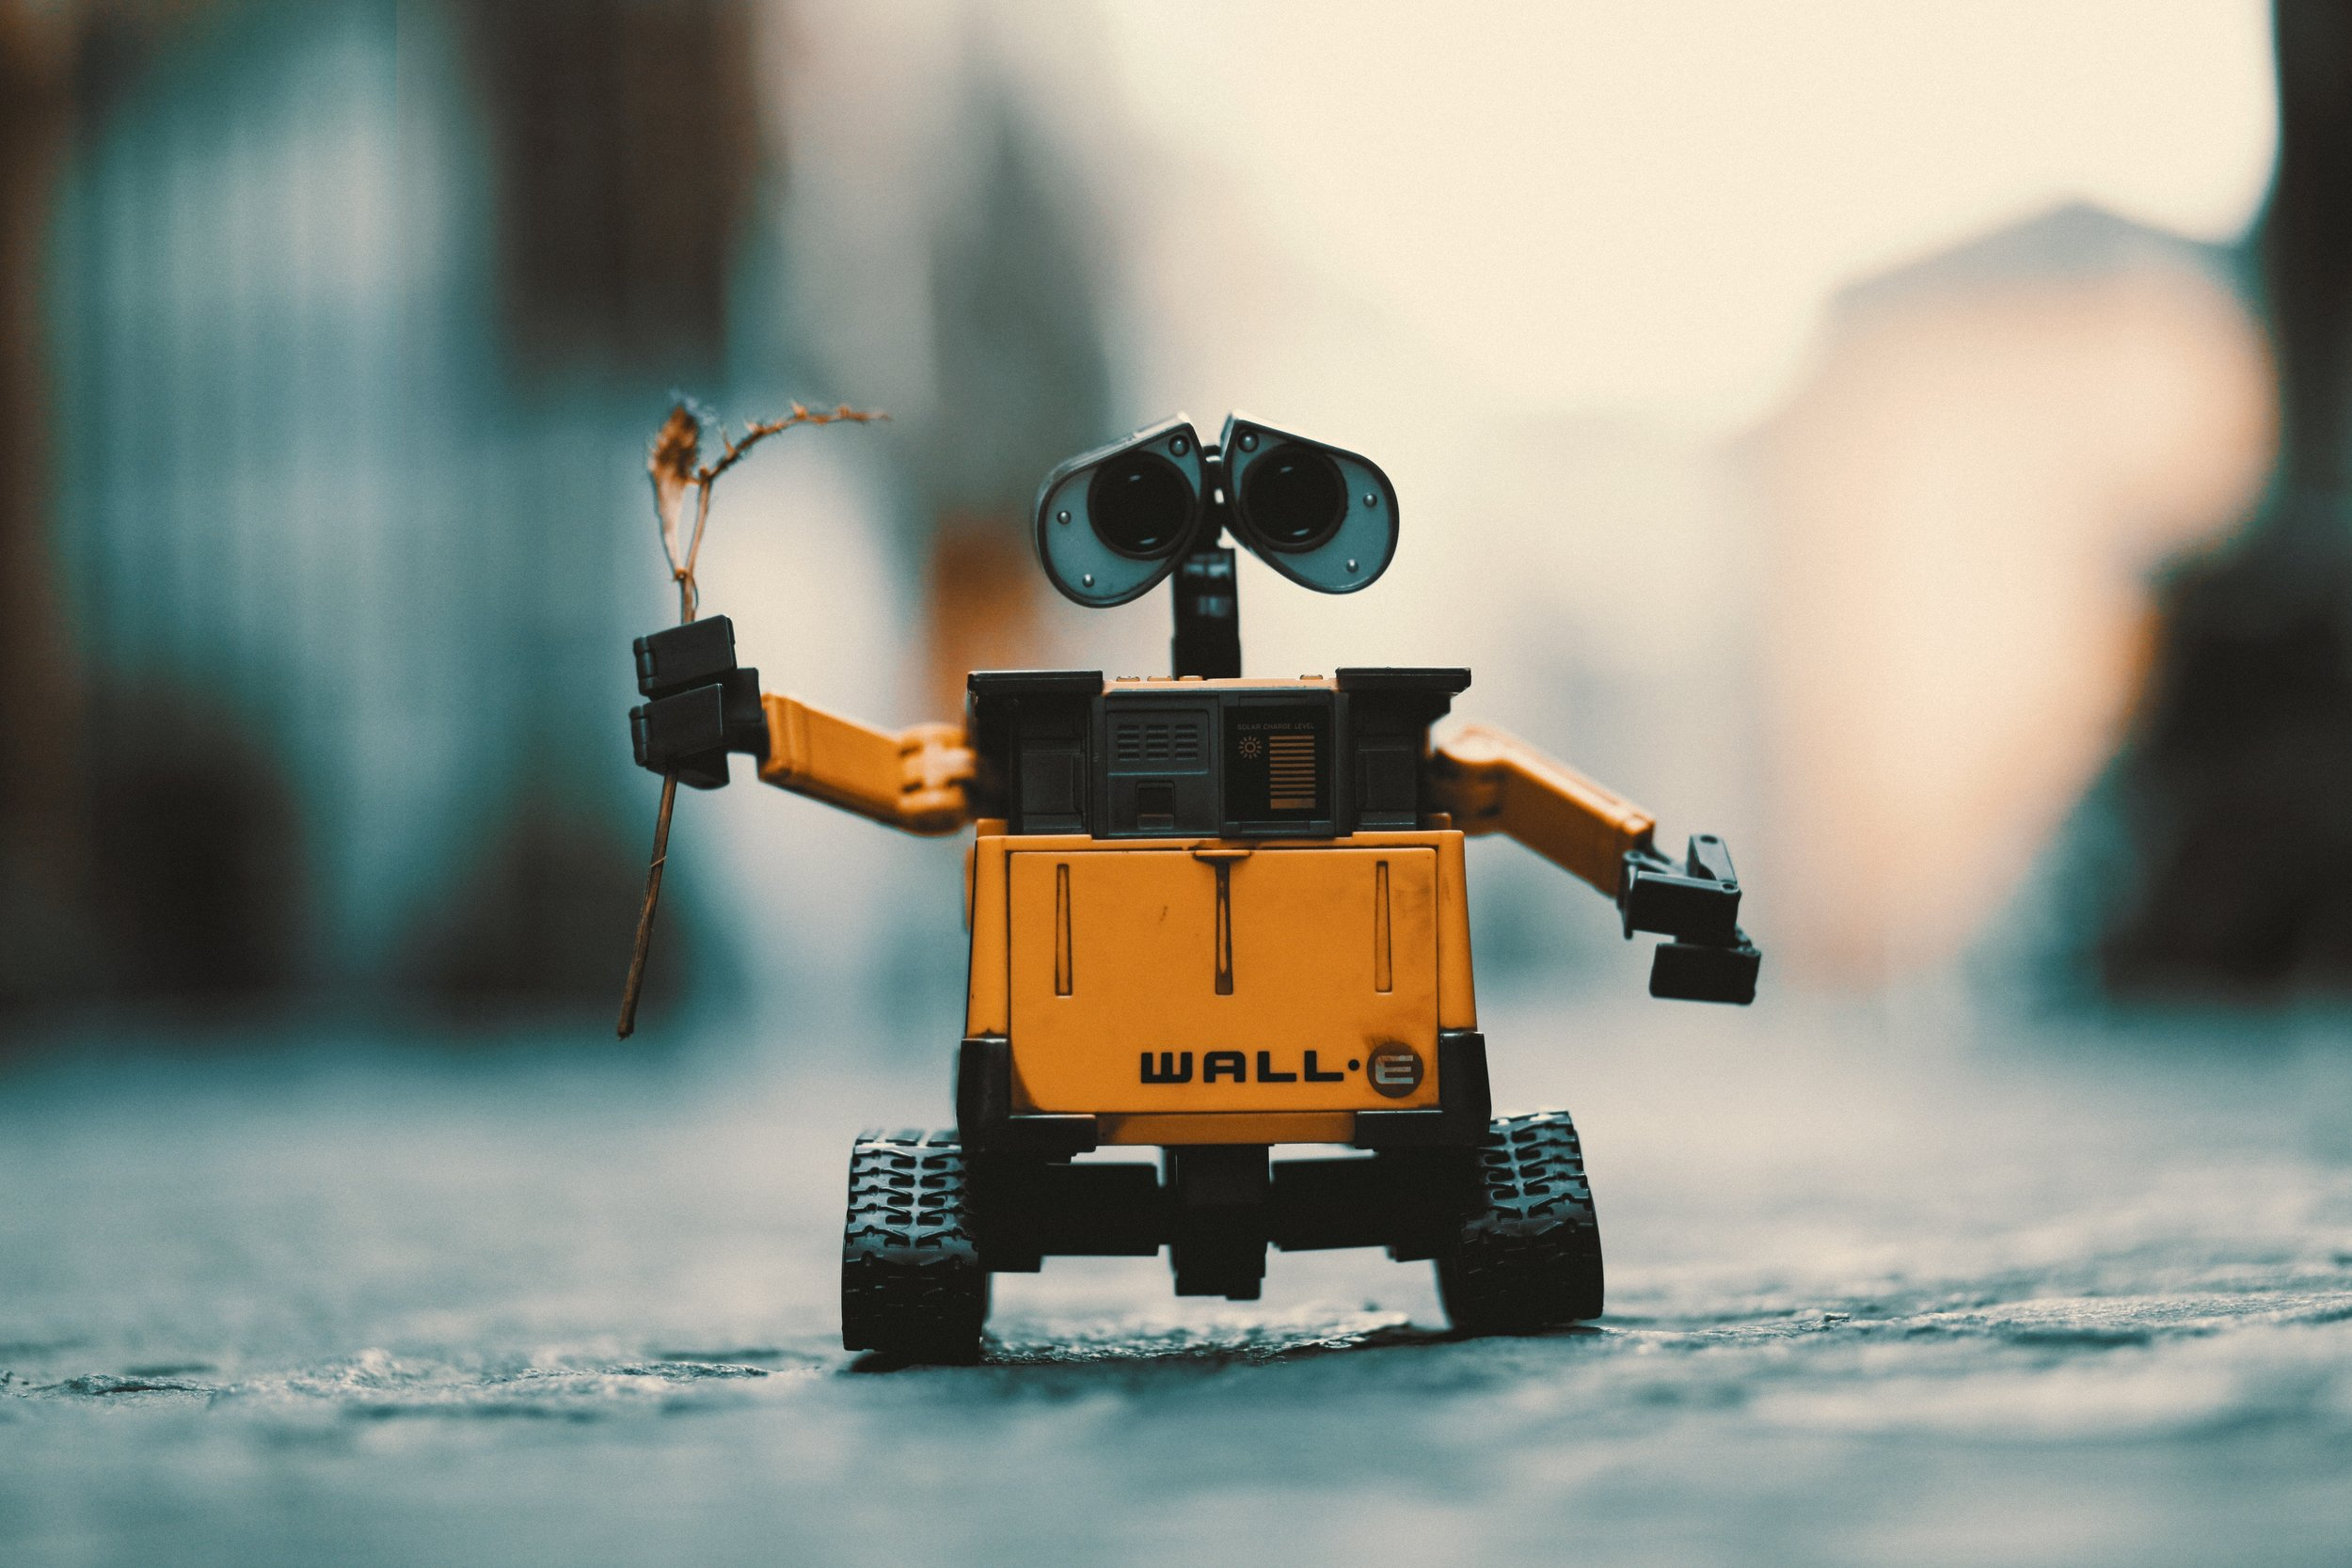 Wall-E wants to contact lightdotlab for training, consulting, and partnerships